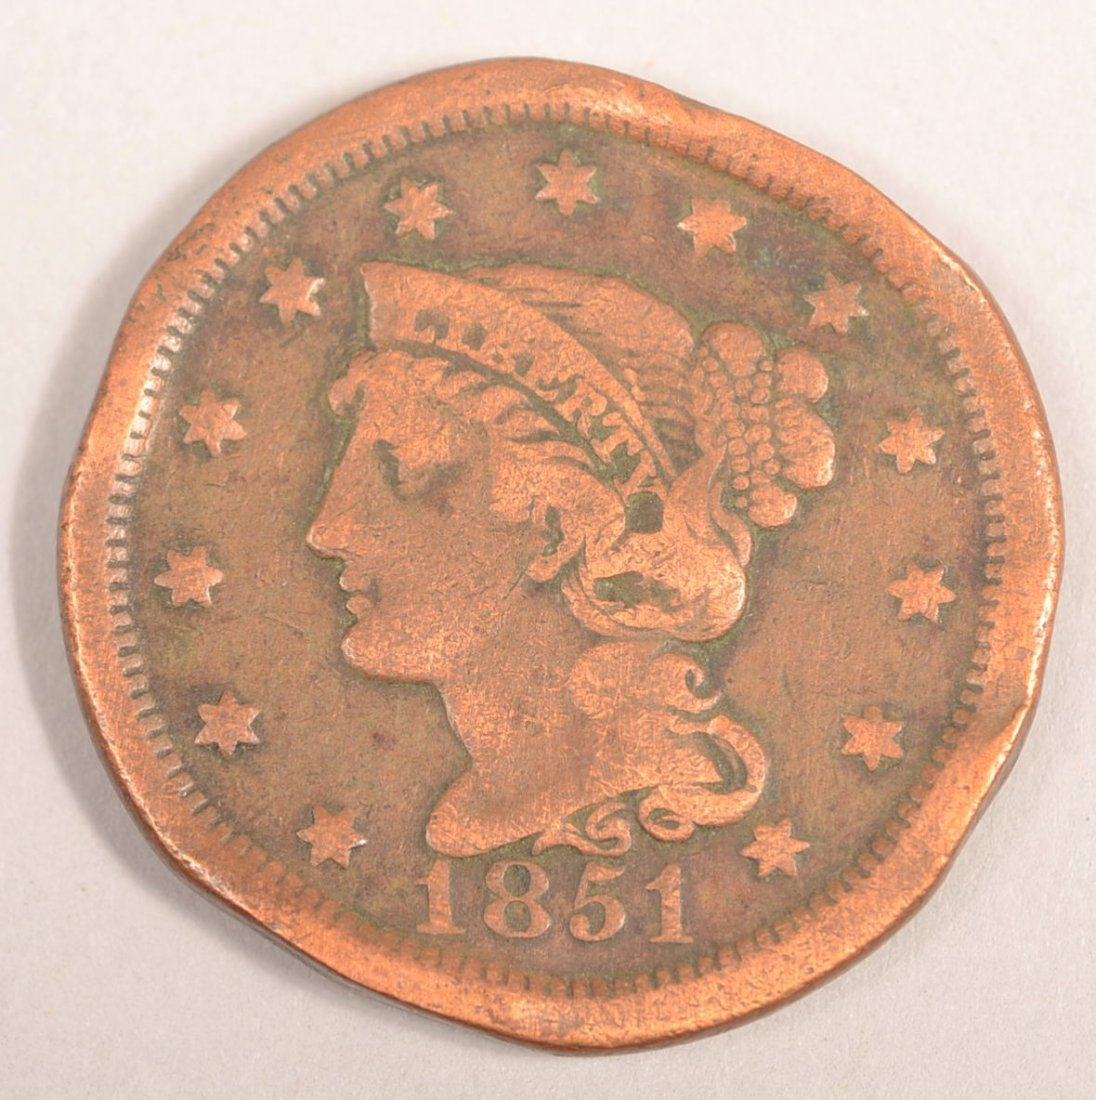 1851 LARGE CENT (NORMAL DATE)